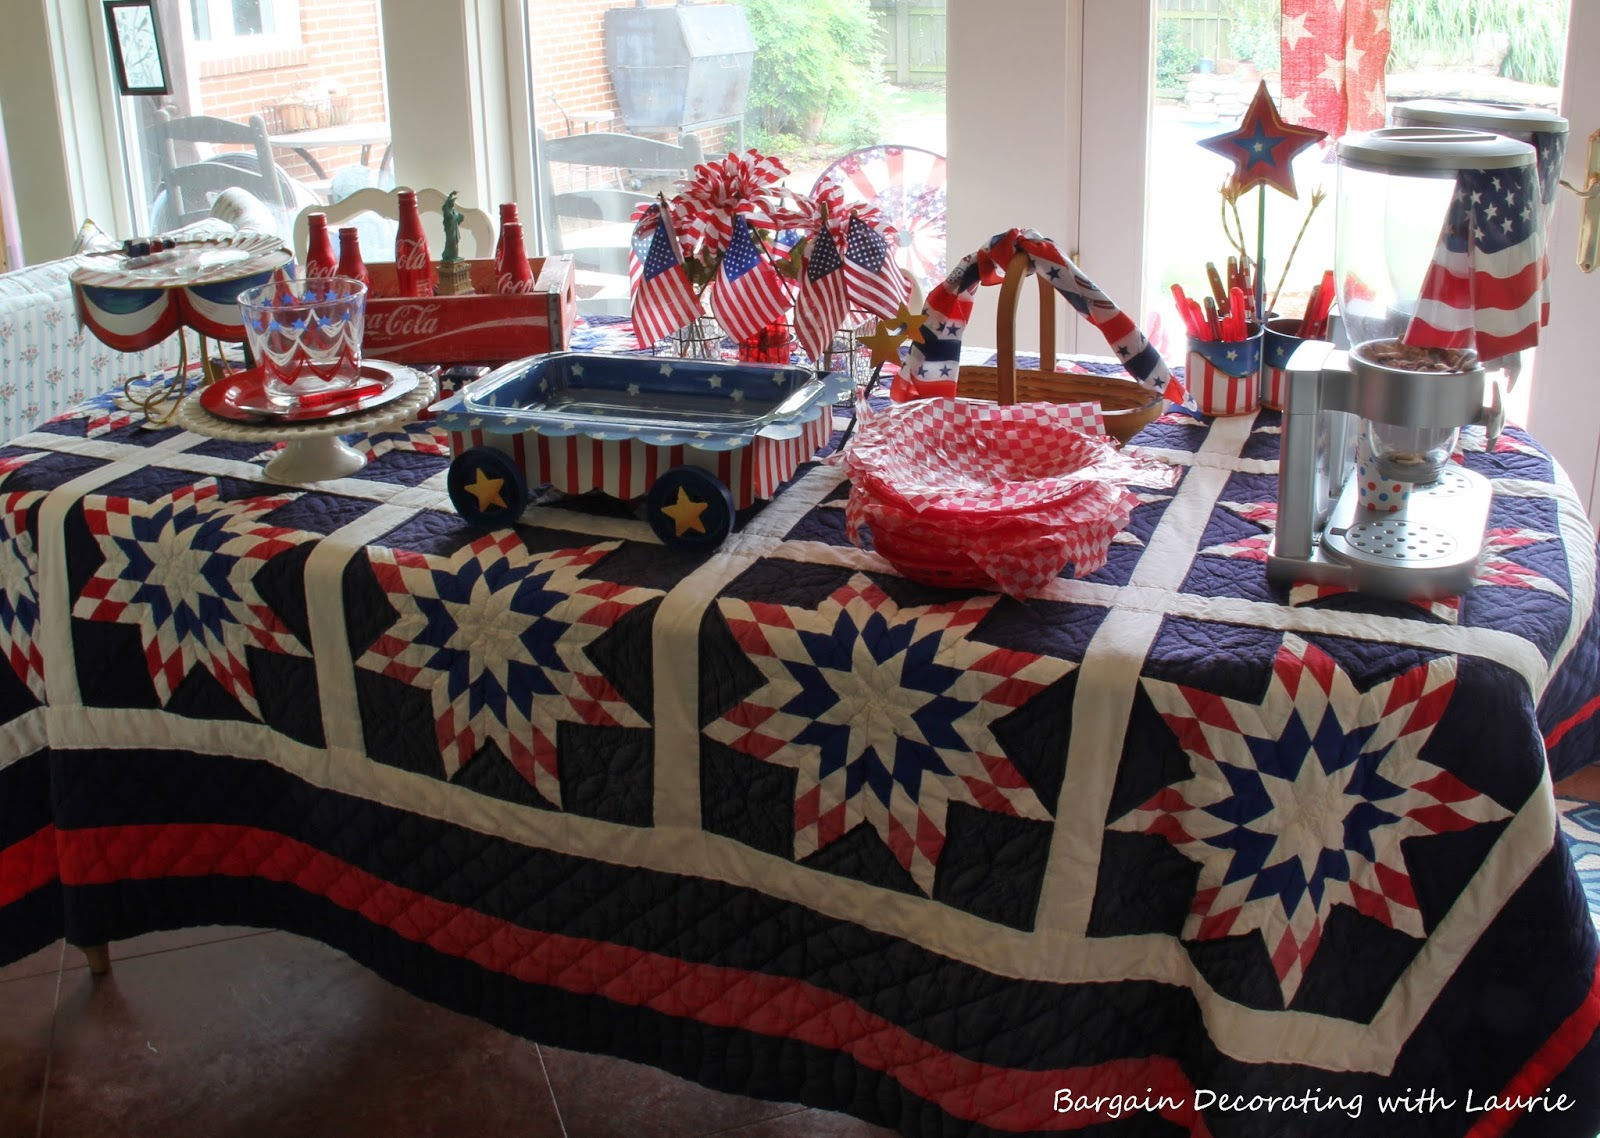 BARGAIN DECORATING WITH LAURIE: RED WHITE AND BLUE SNACK TABLE